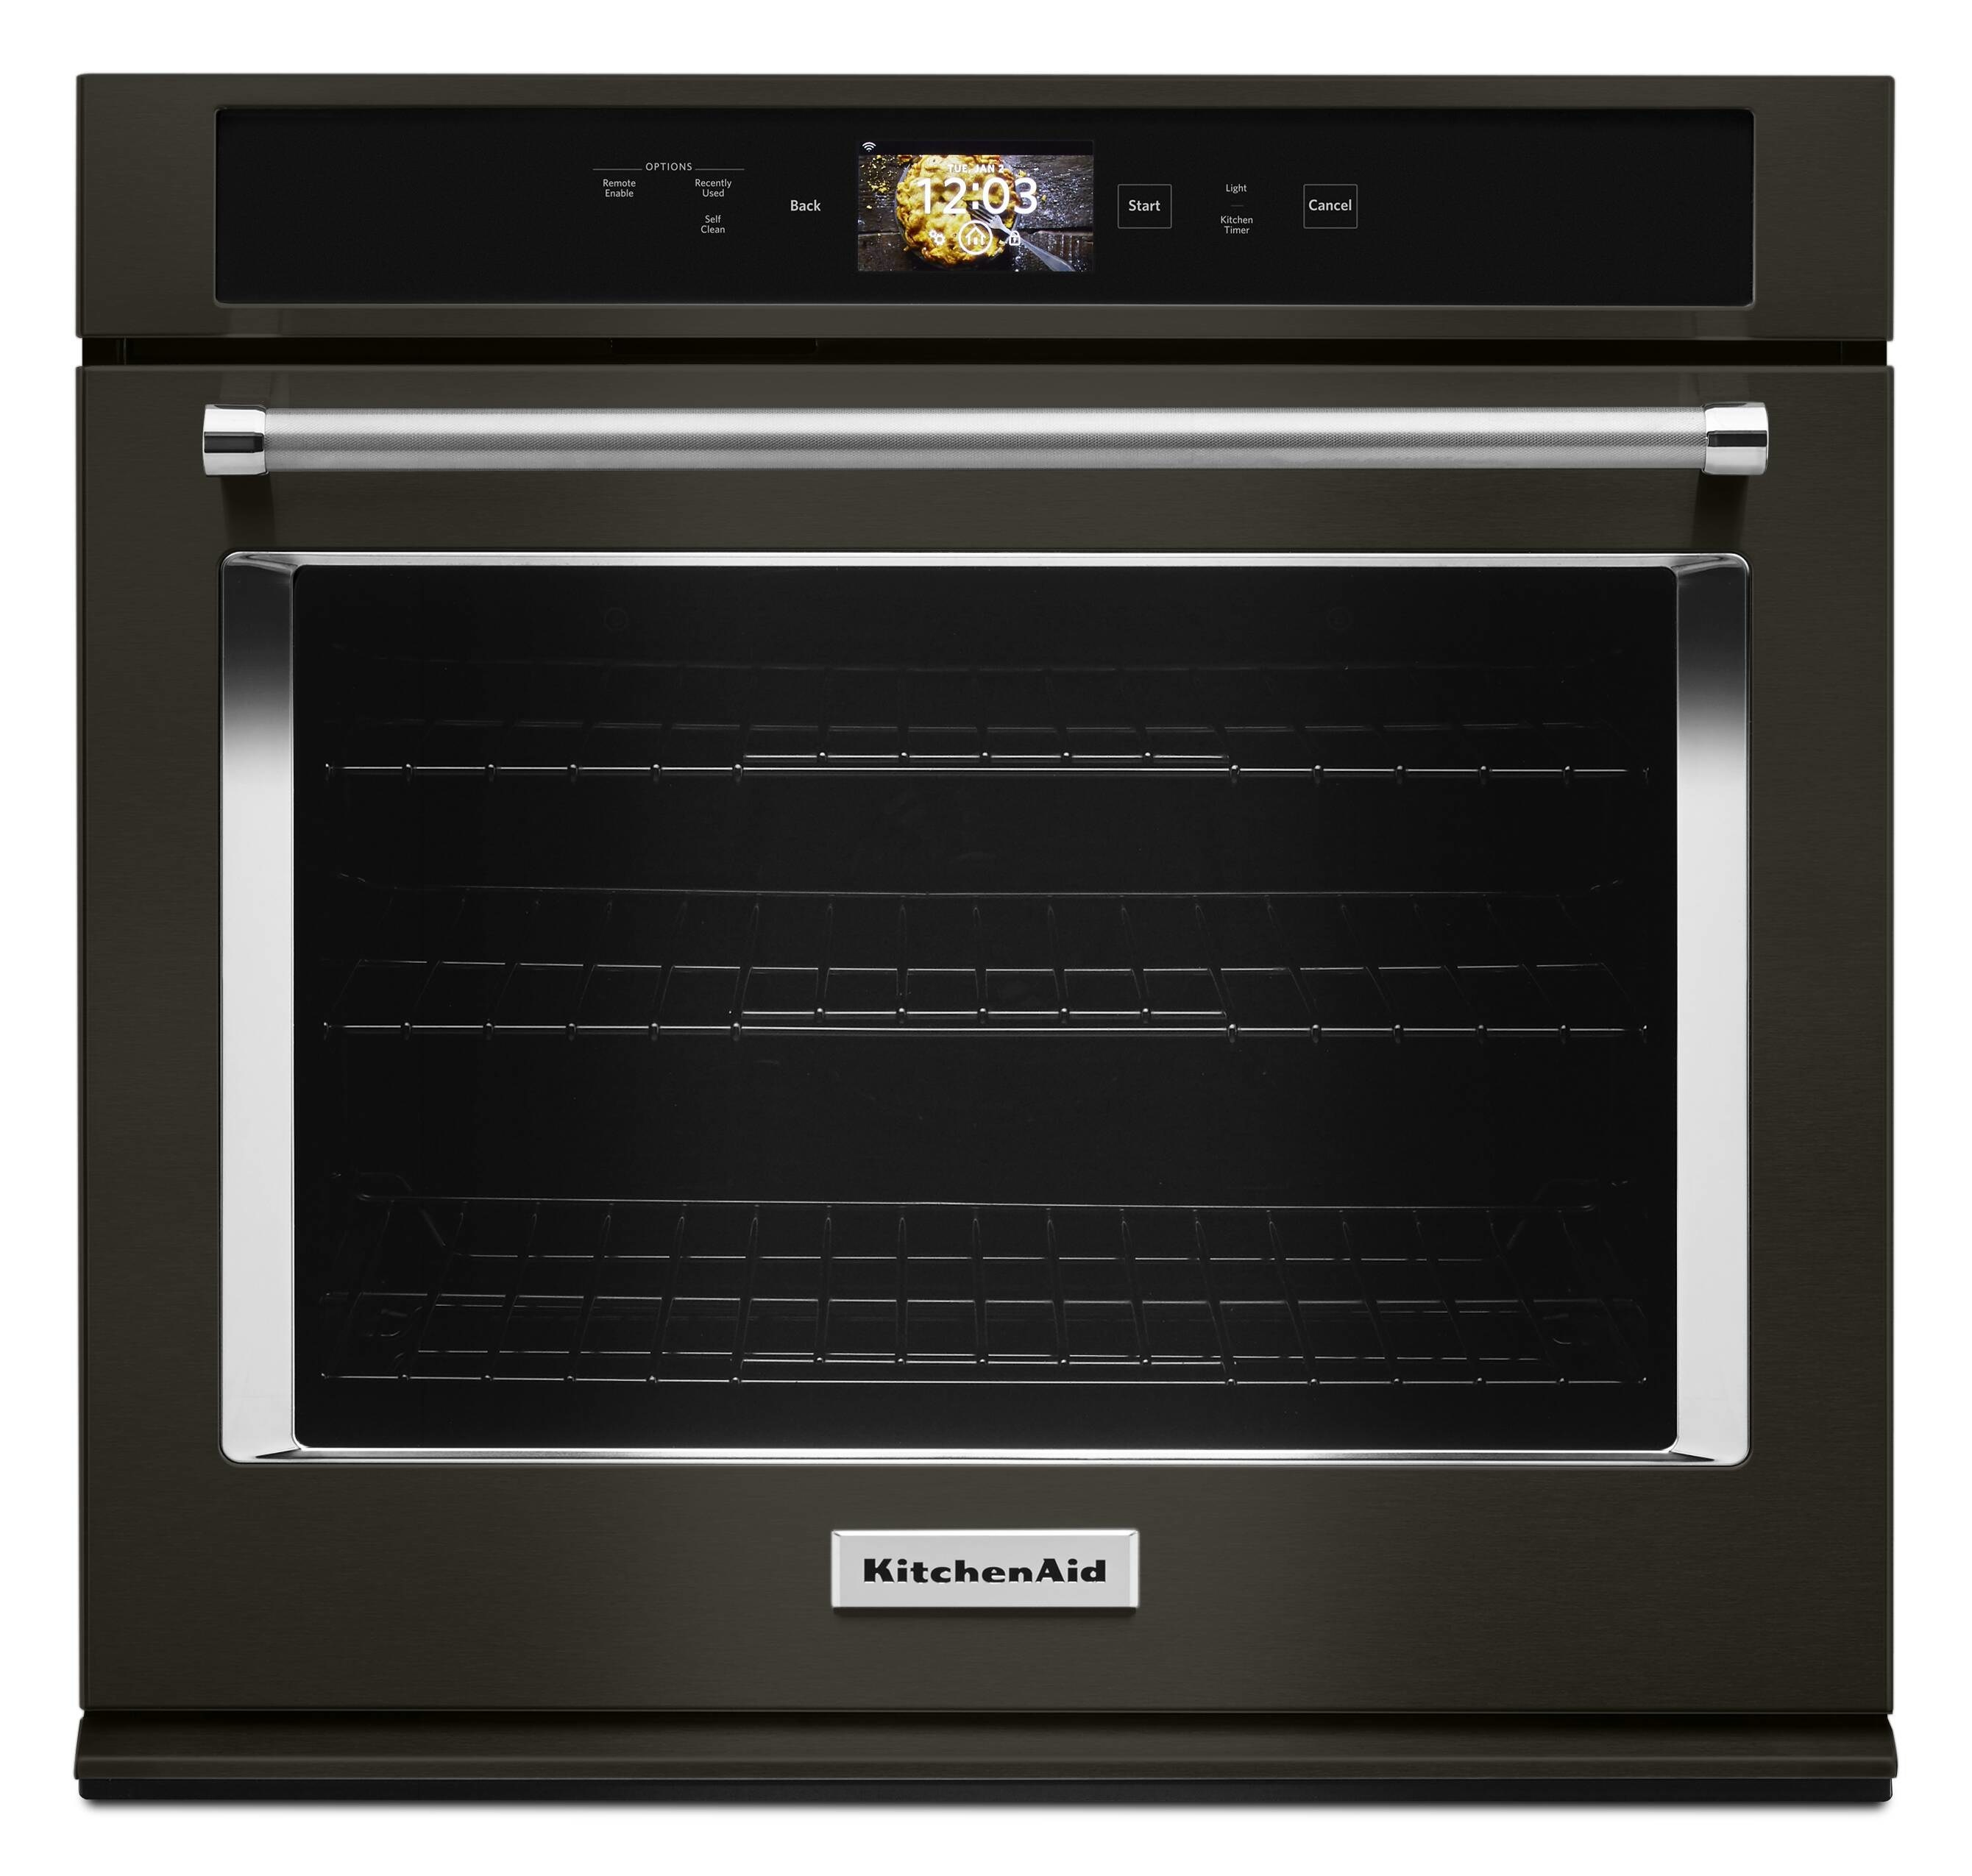 Attachments In New Smart Oven